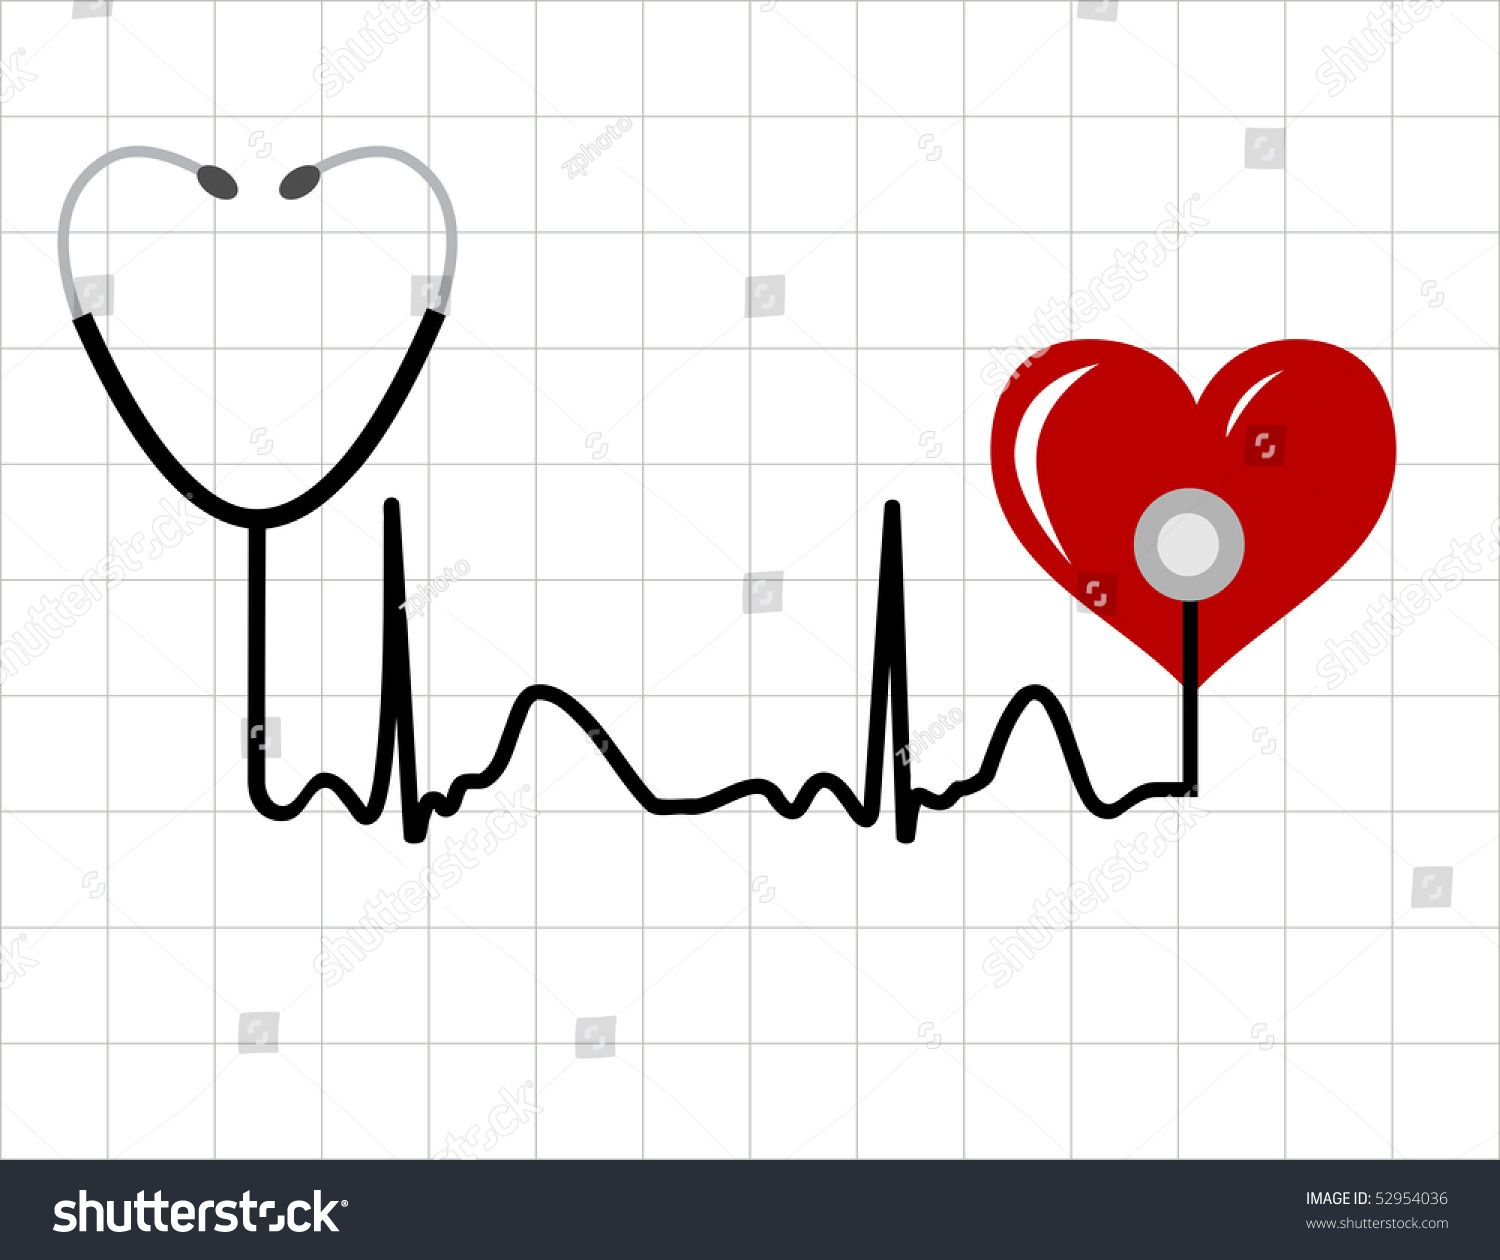 Heart and a medical stethoscope with heartbeat (pulse) symbol